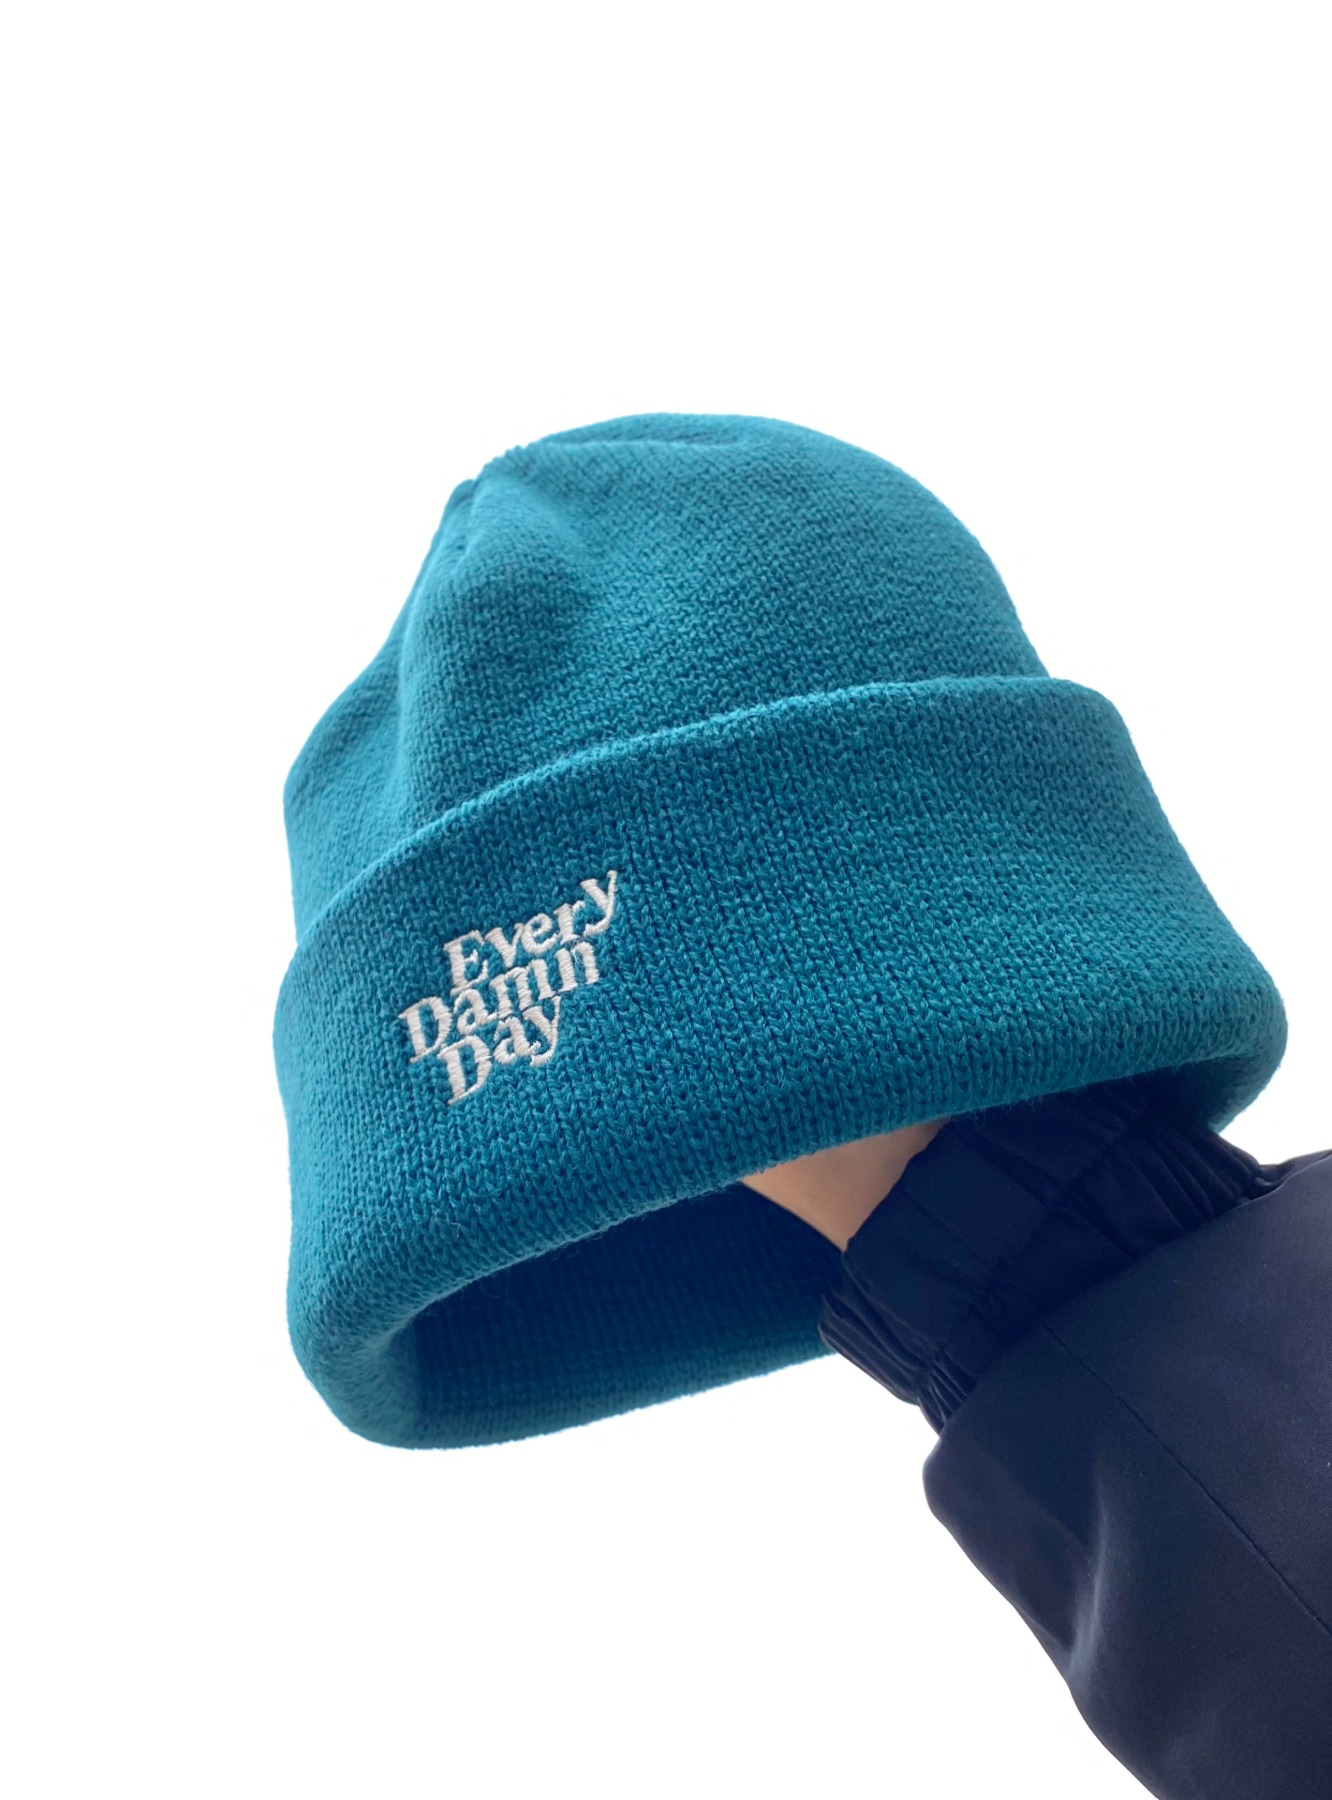 Every Damn Day Beanie - Peacock Green